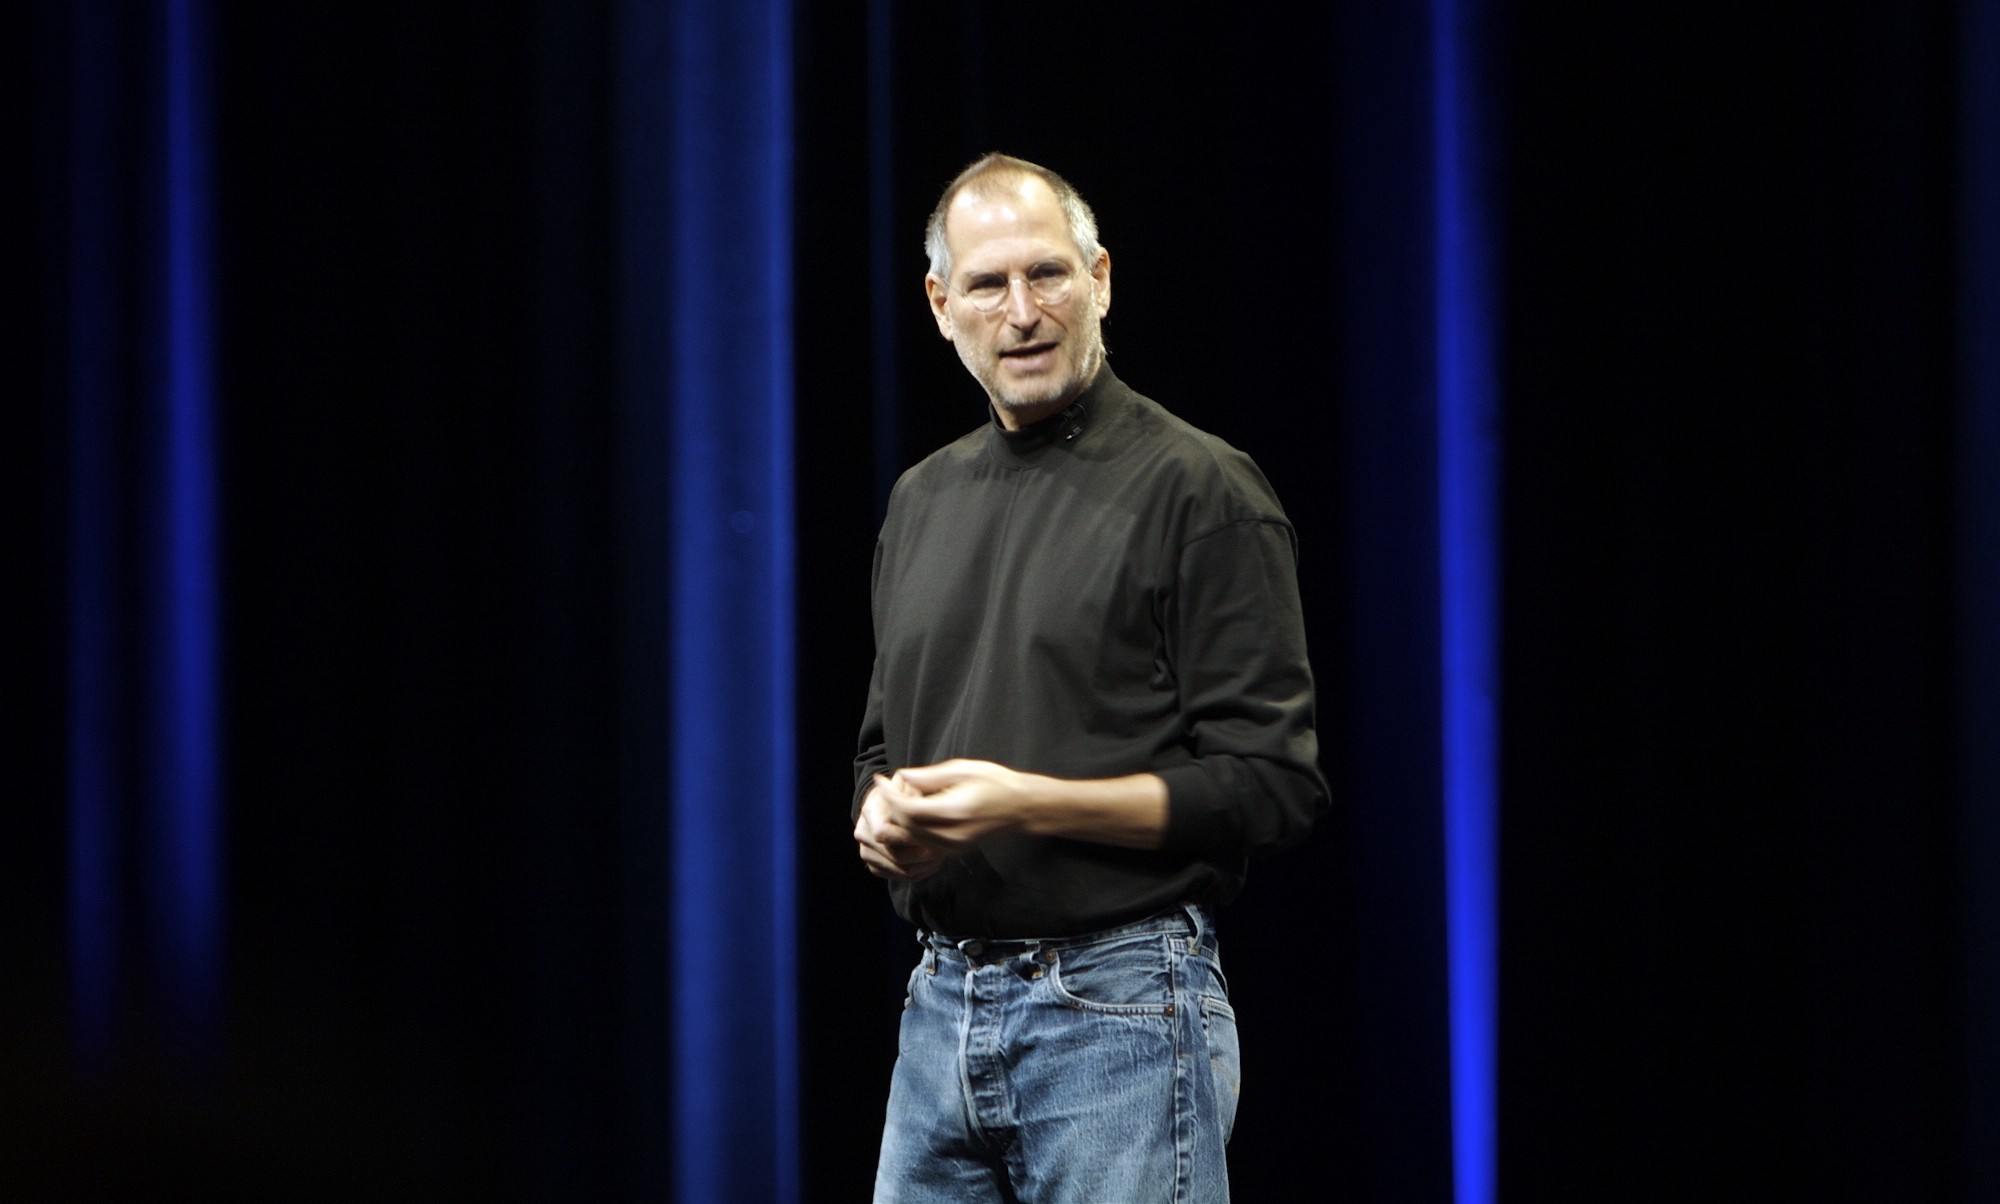 how to answer tough questions like steve jobs mark enko steve jobs returned to the company he was fired from 12 years before he is holding a q a developers one audience member stands